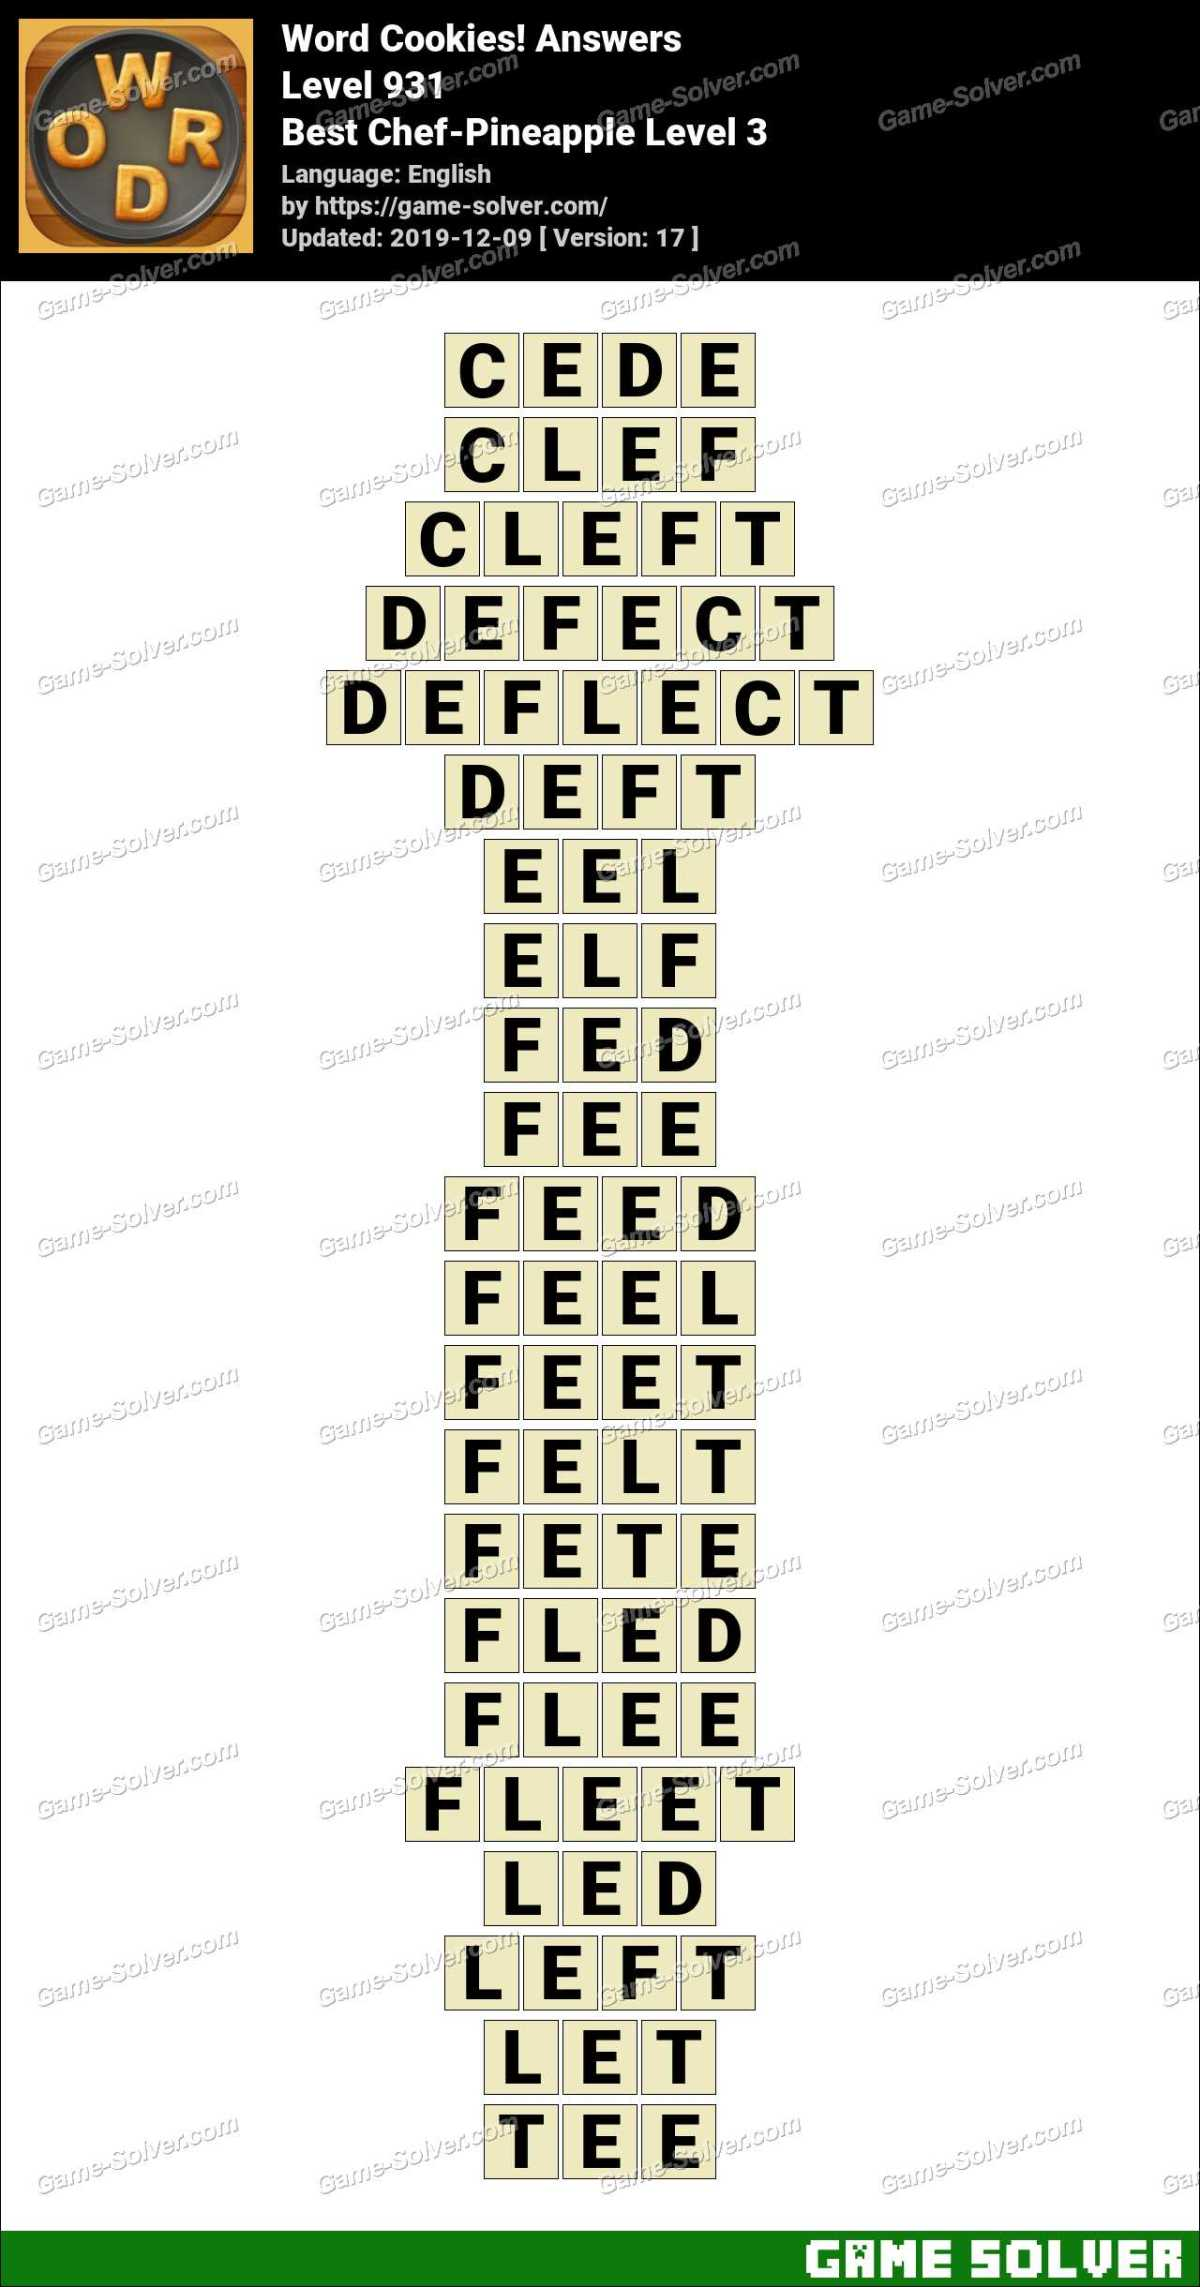 Word Cookies Best Chef-Pineapple Level 3 Answers